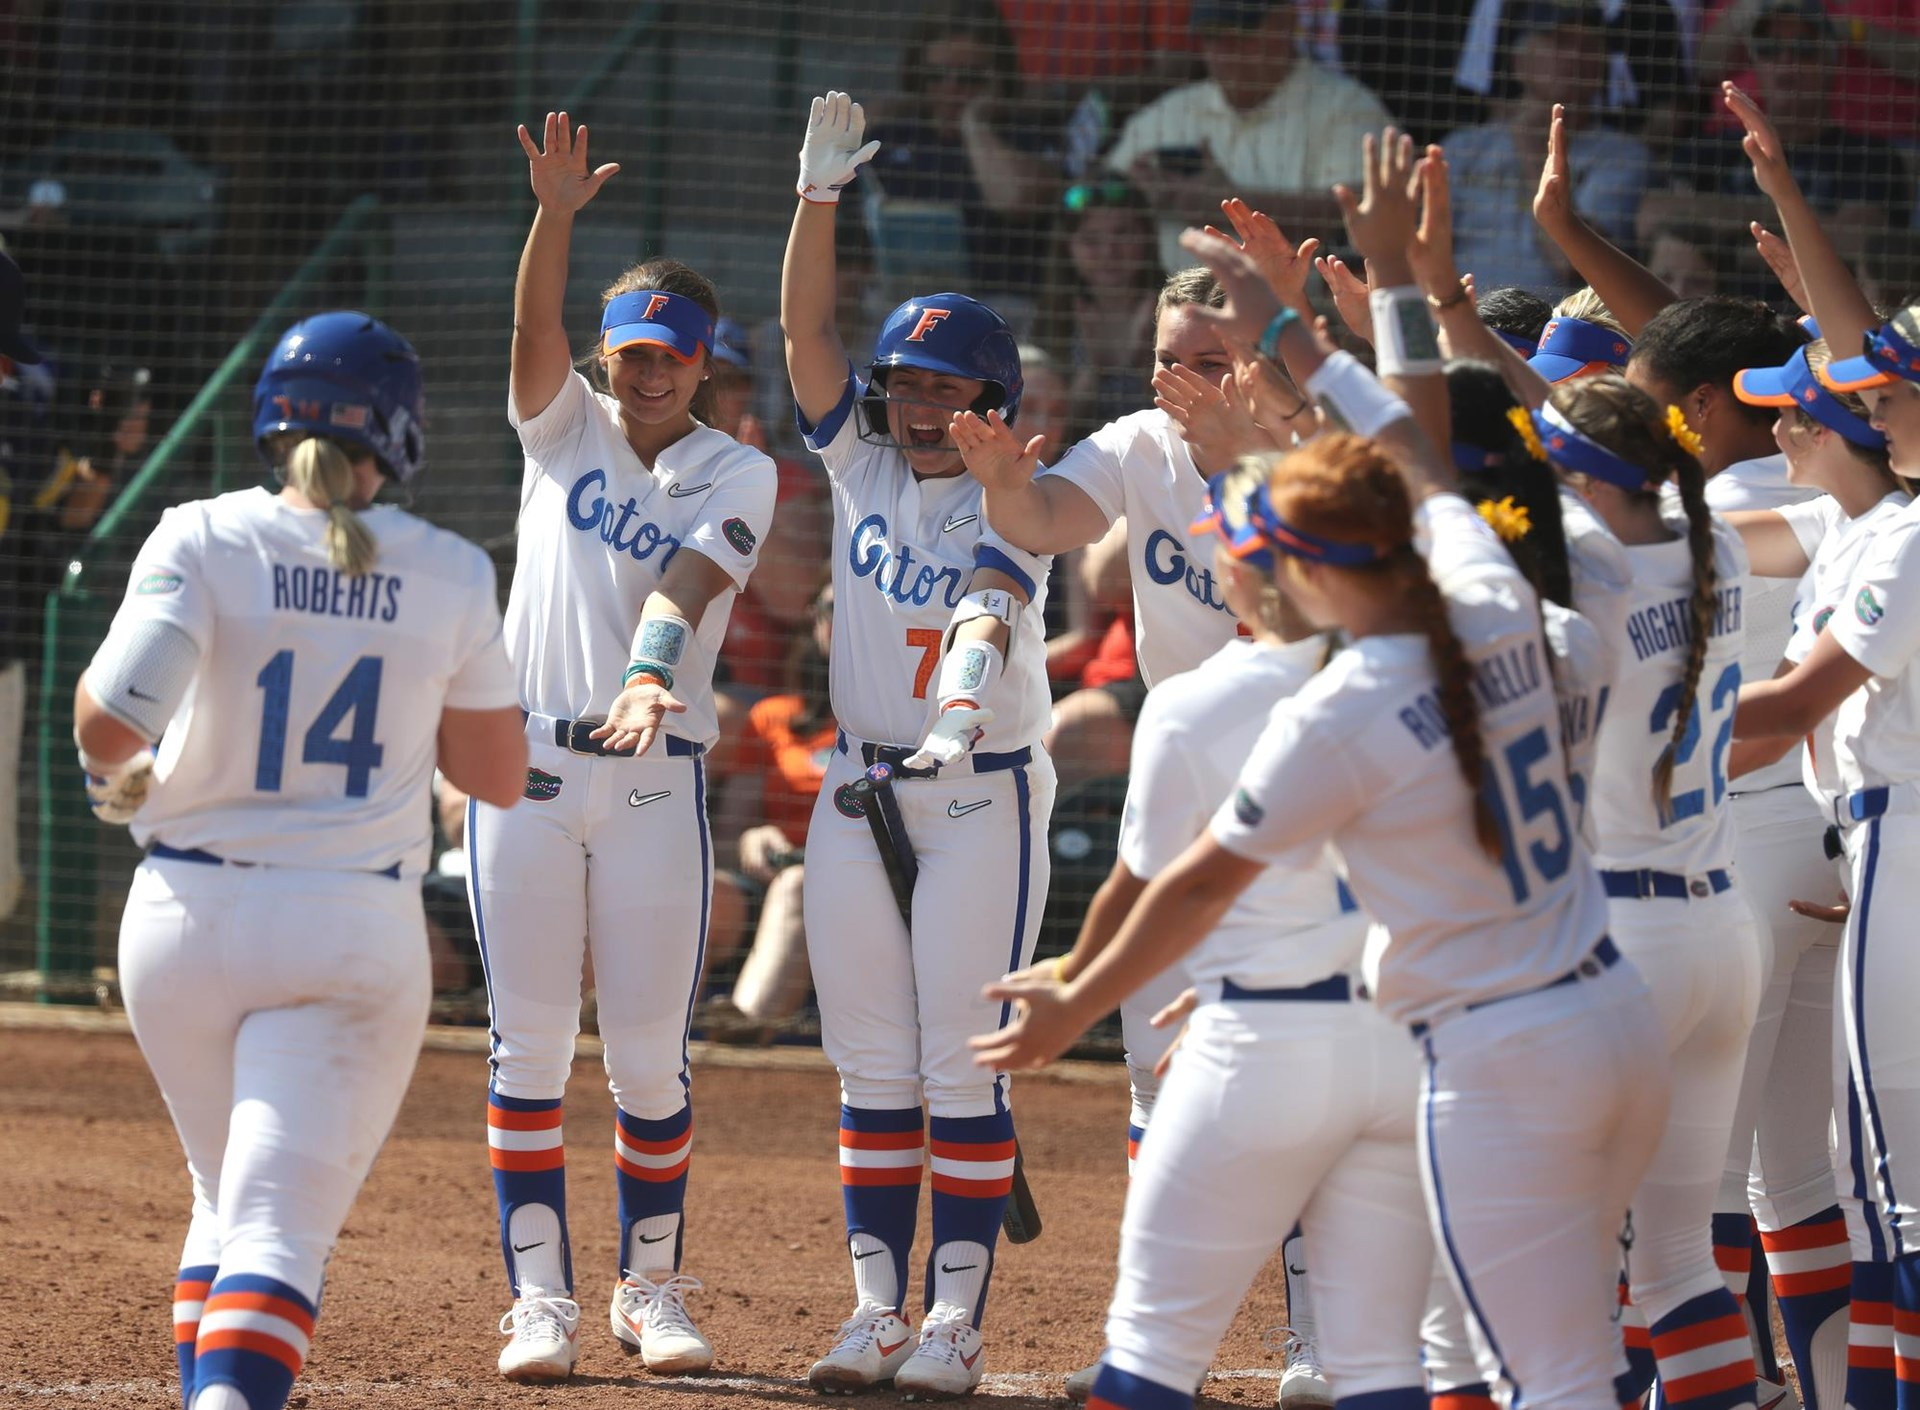 96588406c Jordan Roberts - Softball - Florida Gators